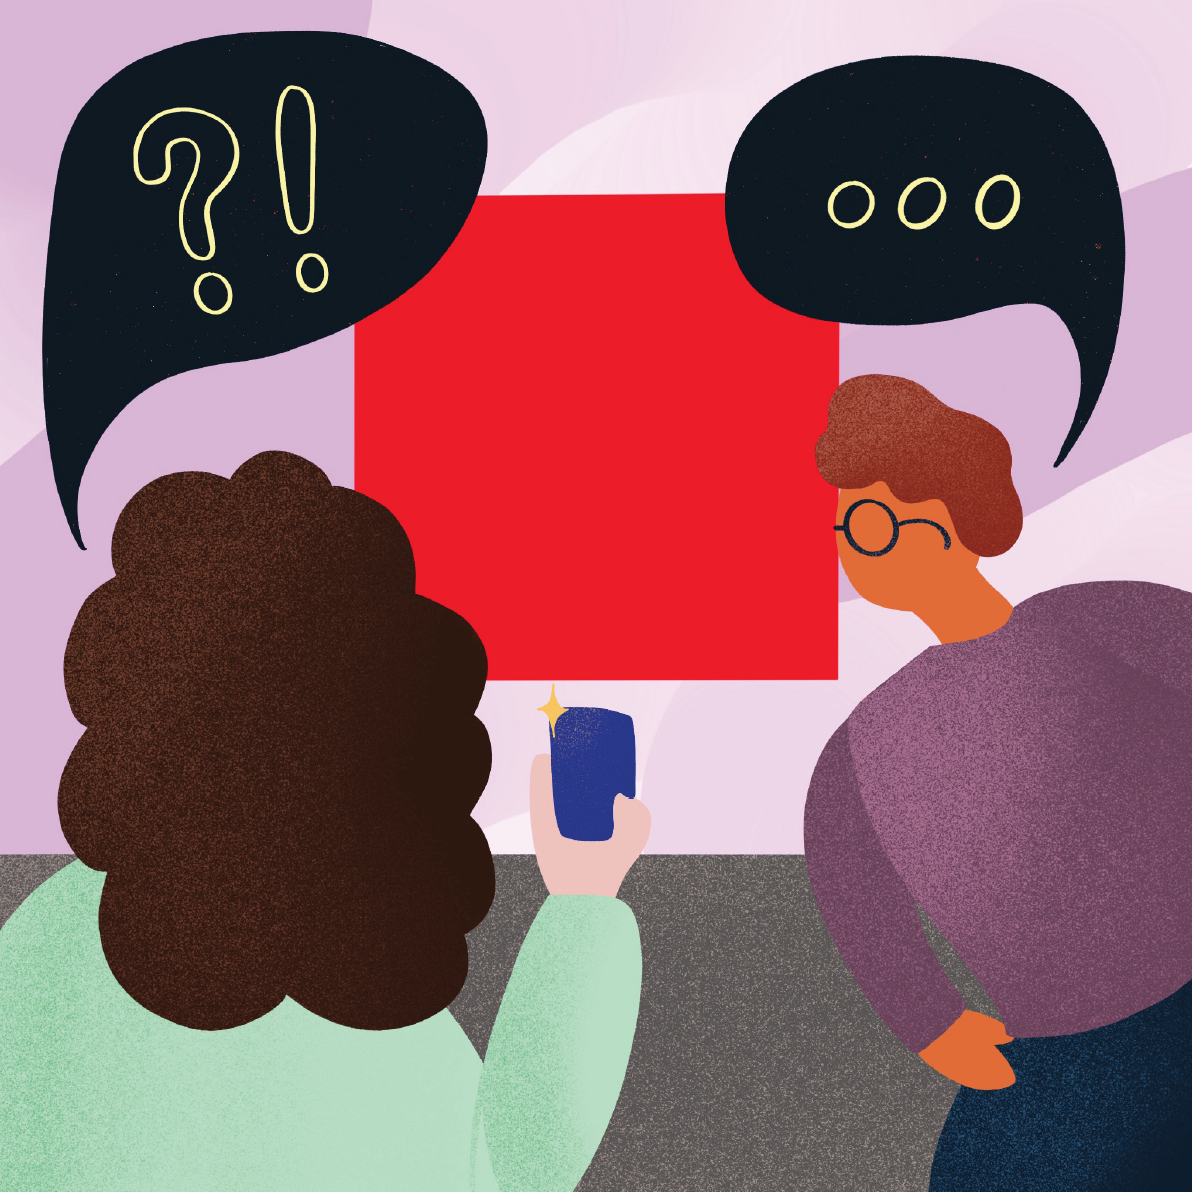 Image Credit: Vanessa Low Image description: a colourful illustration of two people in foreground looking at an artwork in the background. One is taking a photo on their phone, while both have speech bubbles above their heads filled with question and exclamation marks